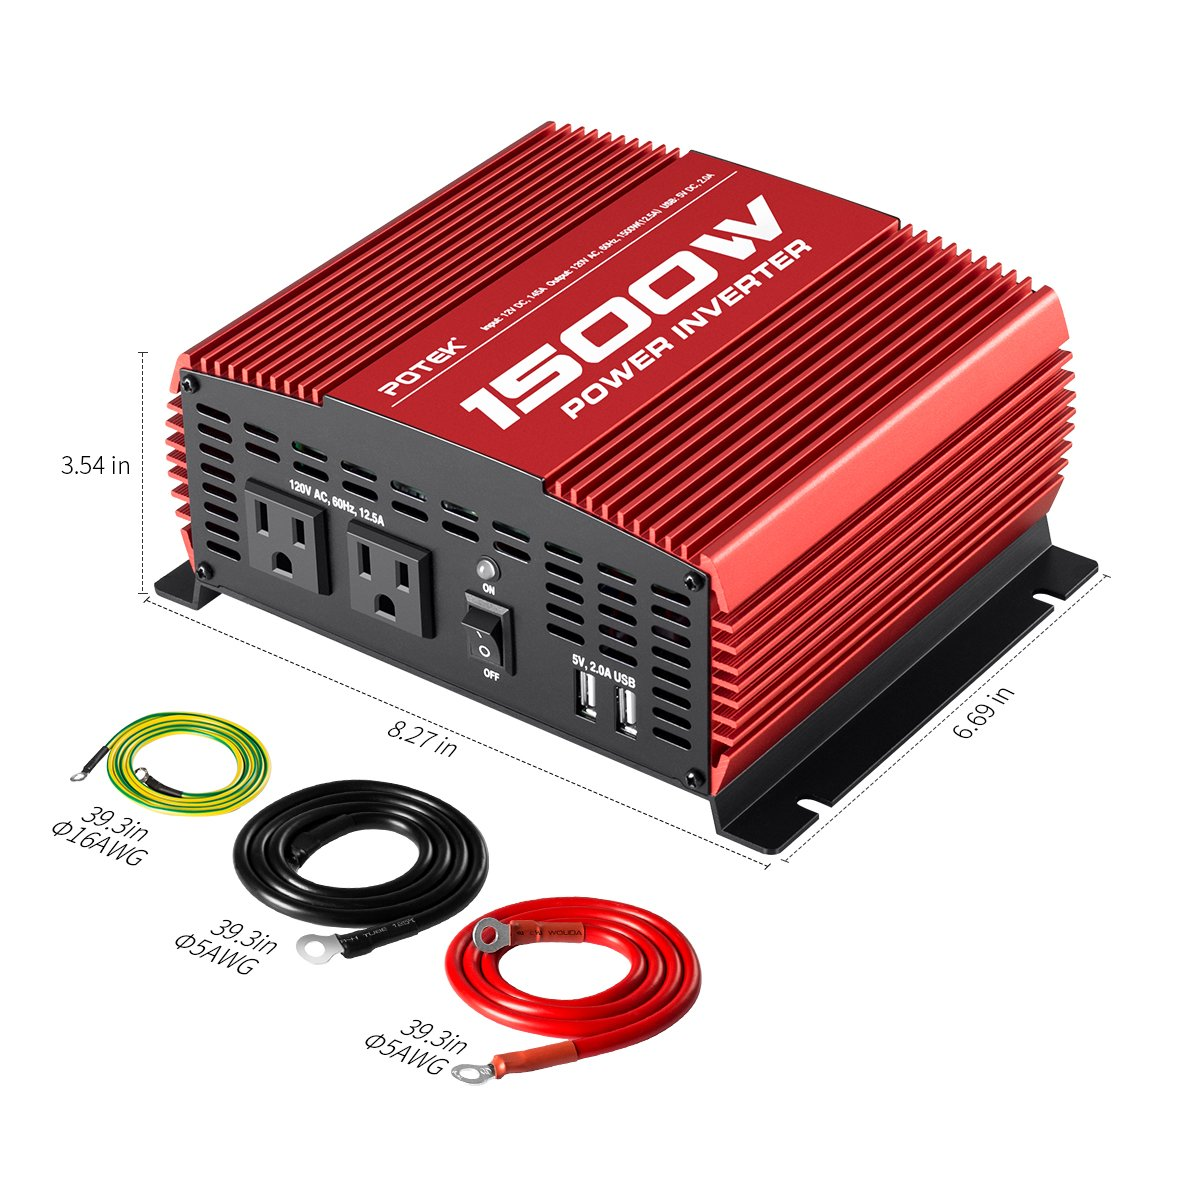 Amazon.com: POTEK 1500W Power Inverter DC 12V to AC 110V Car Inverter with  Dual AC Outlets and Dual USB Ports: Automotive